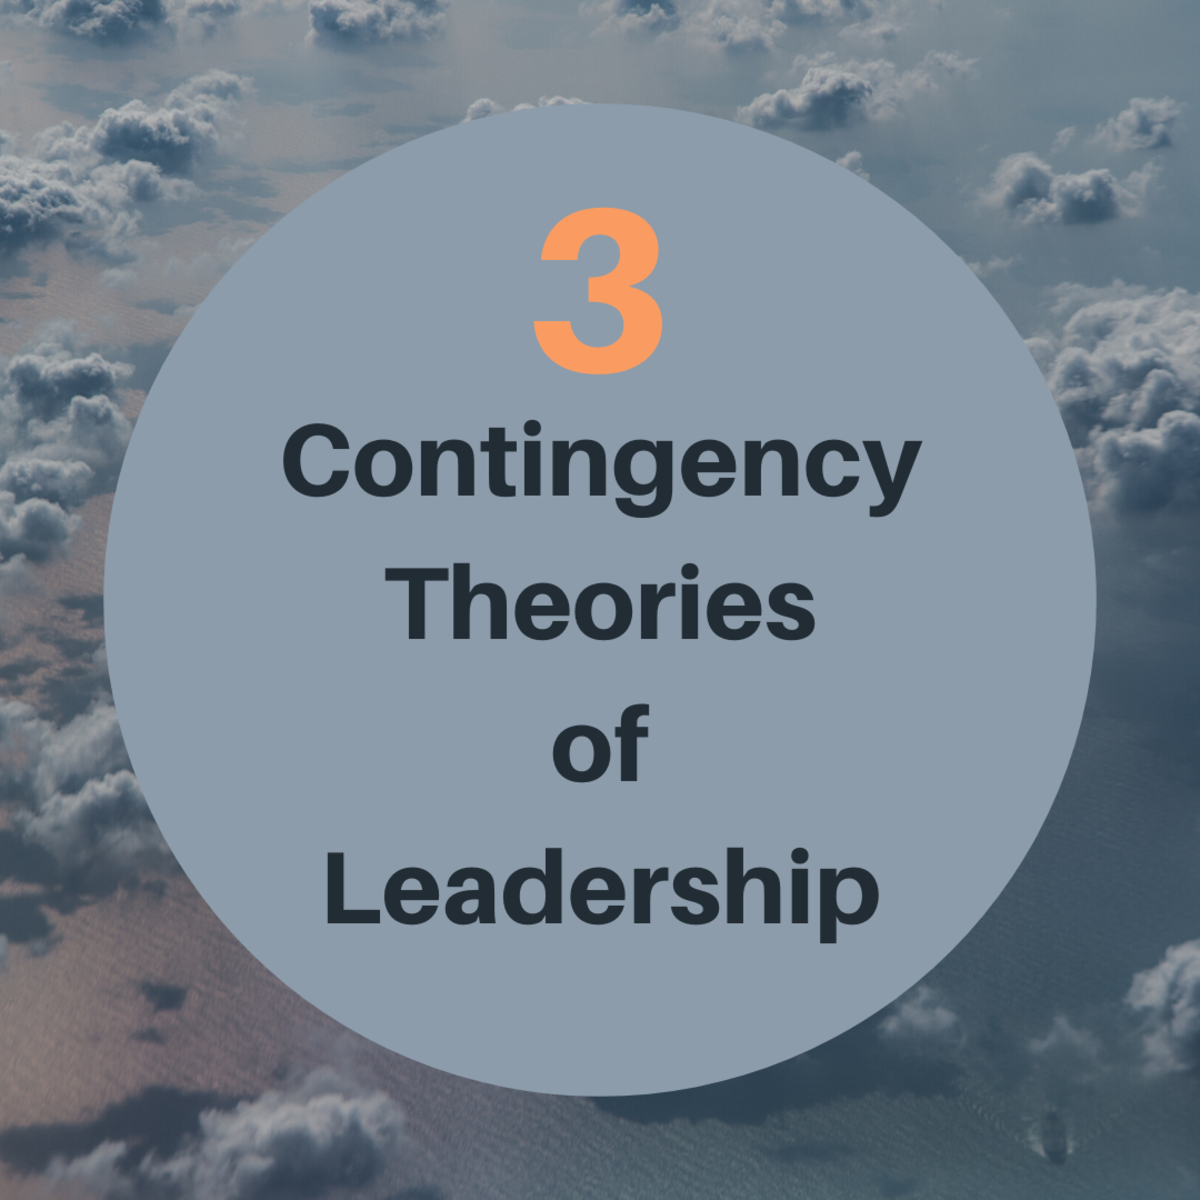 Learn about three leadership theories: Fiedler's Contingency Model, House's Path-Goal Theory, and Hersey and Blanchard's Situational Model.